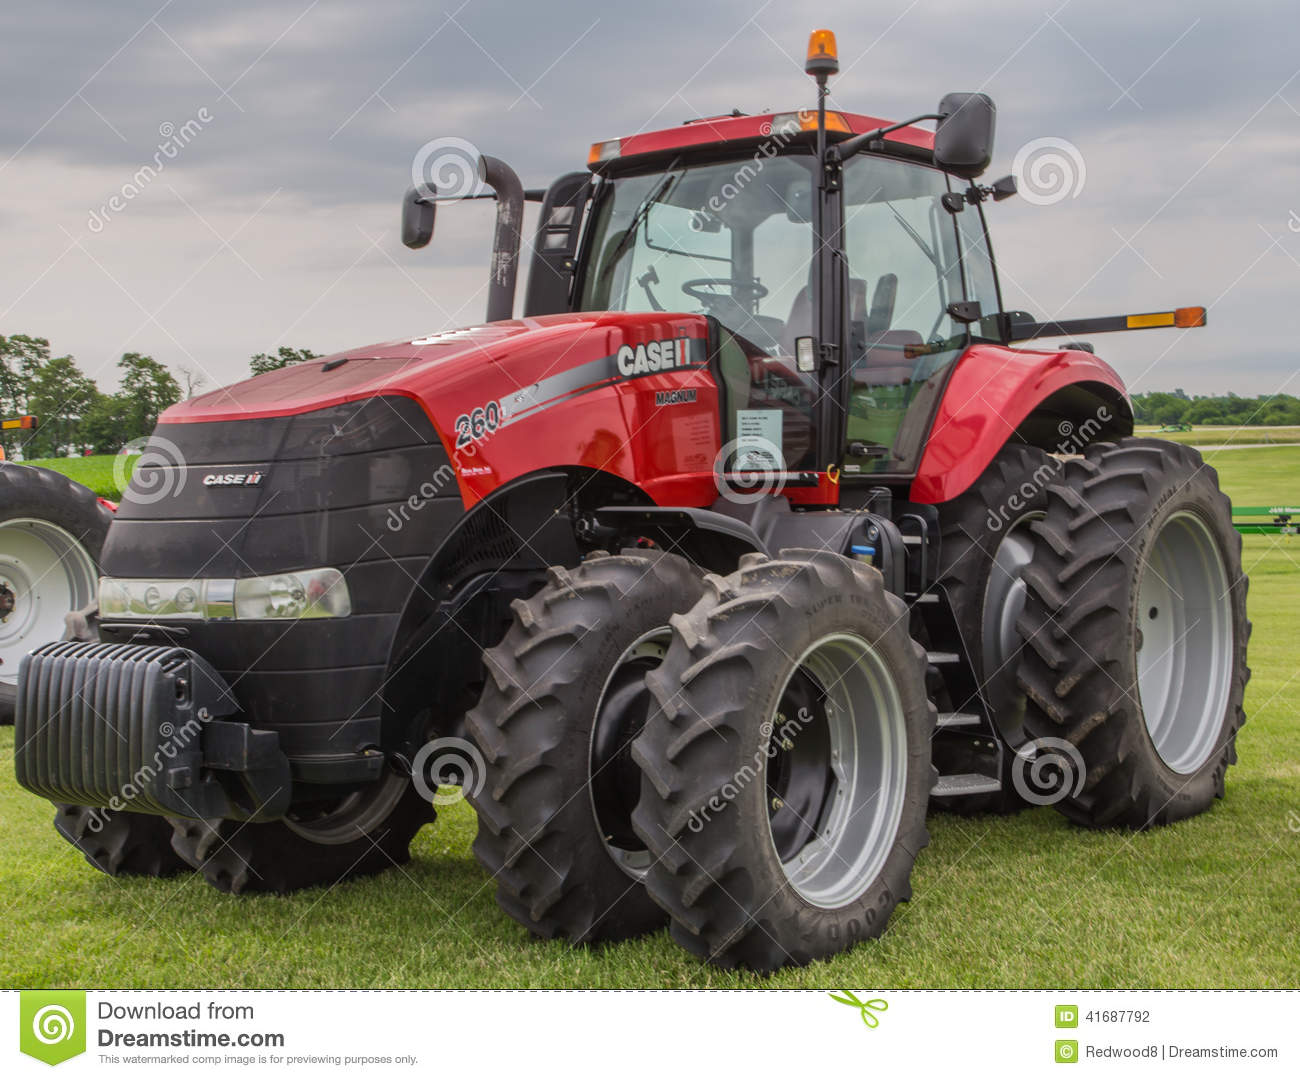 Case International Harvester Tractor : Case ih model farm tractor editorial photography